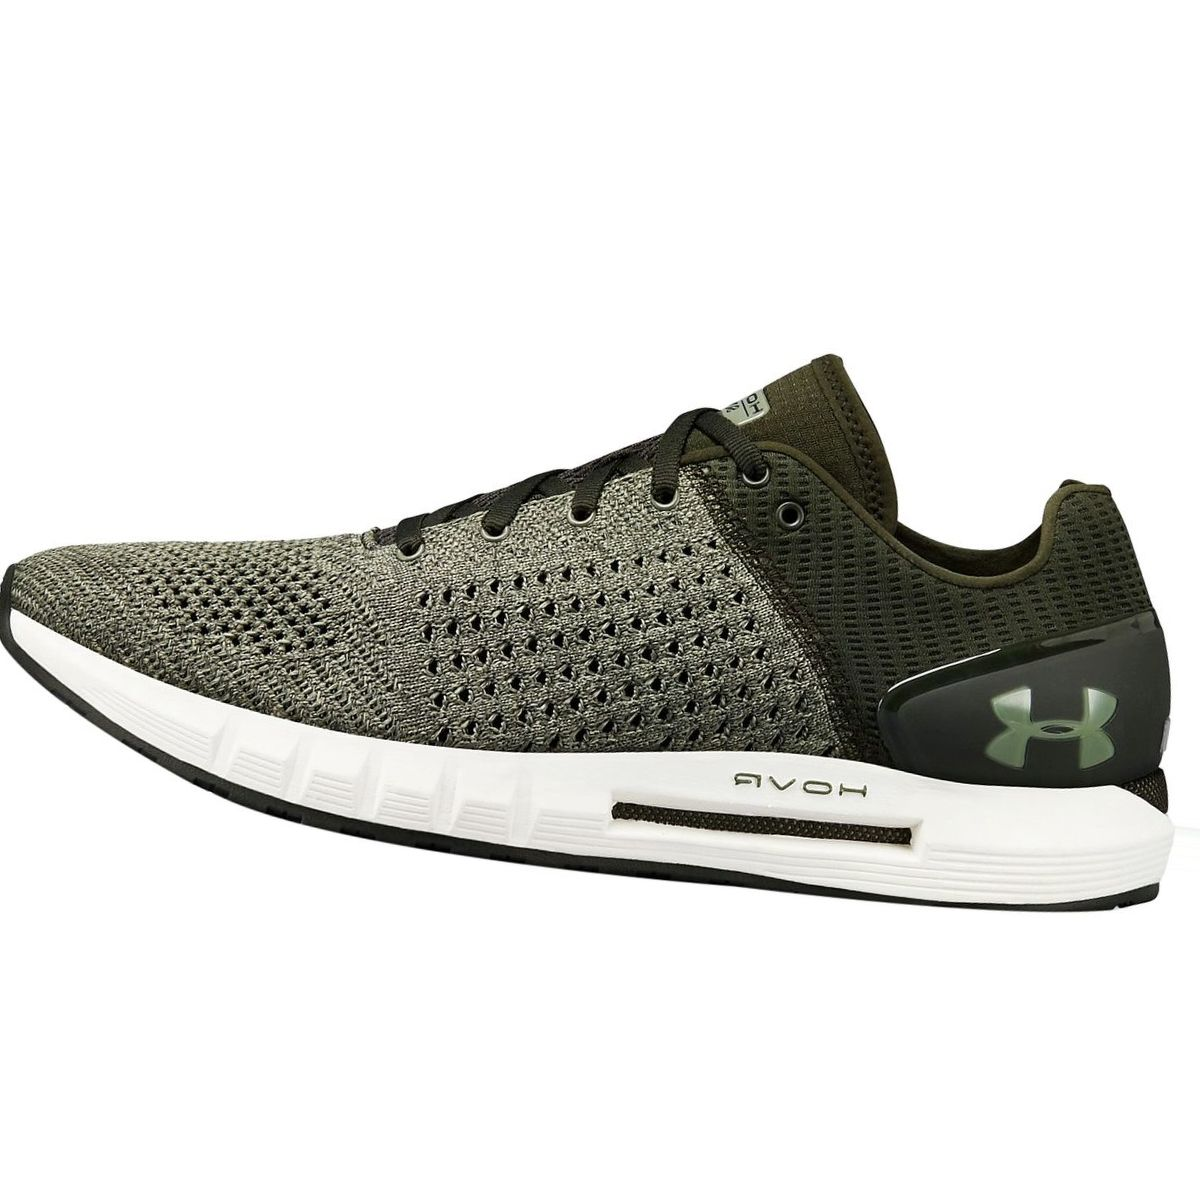 Under Armour HOVR Sonic NC Running Shoe - Men's